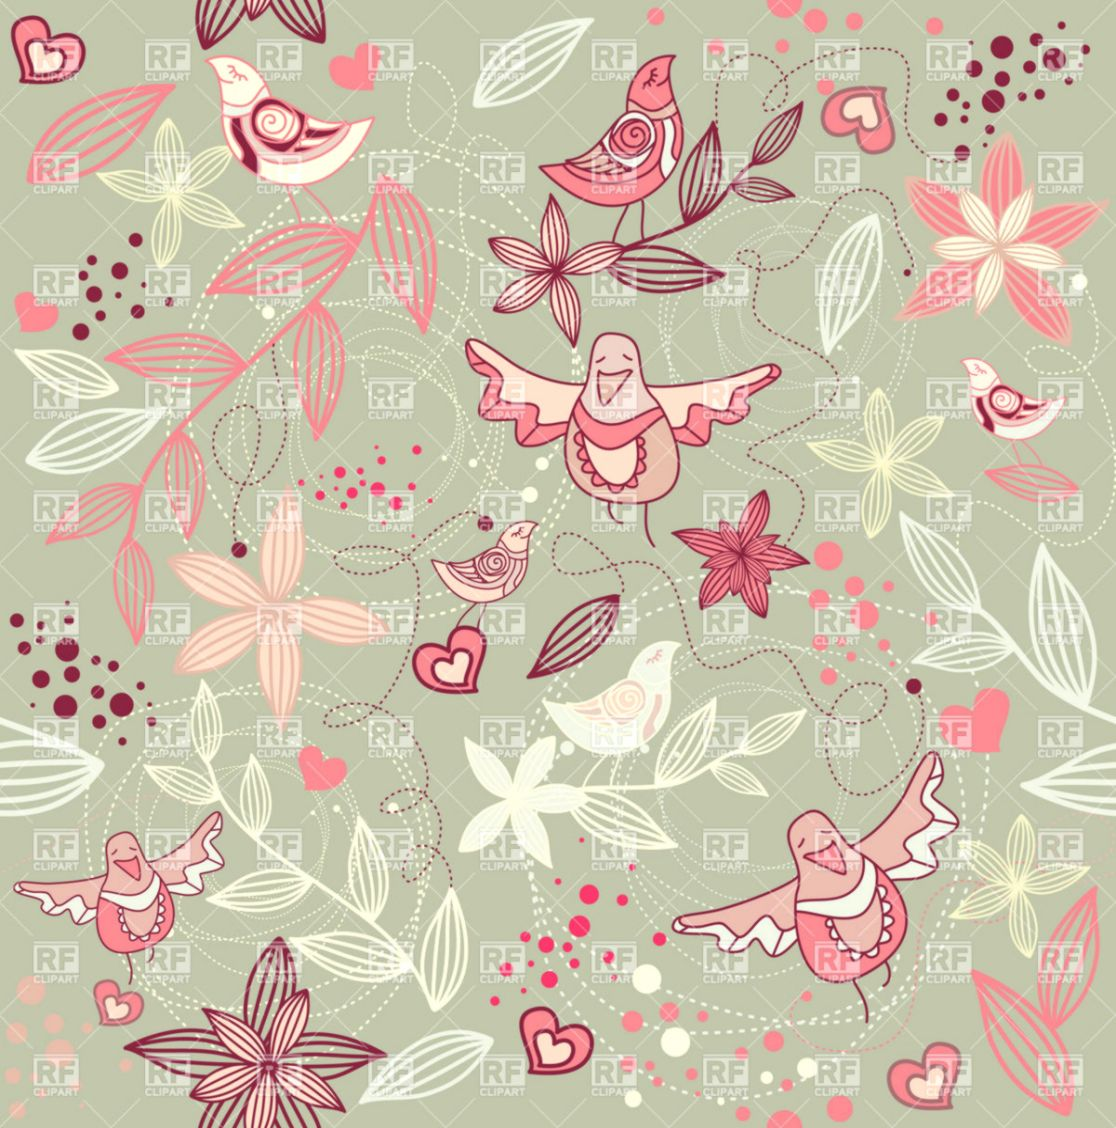 Cute Vintage Bird Wallpaper Wallpapers Minimalist